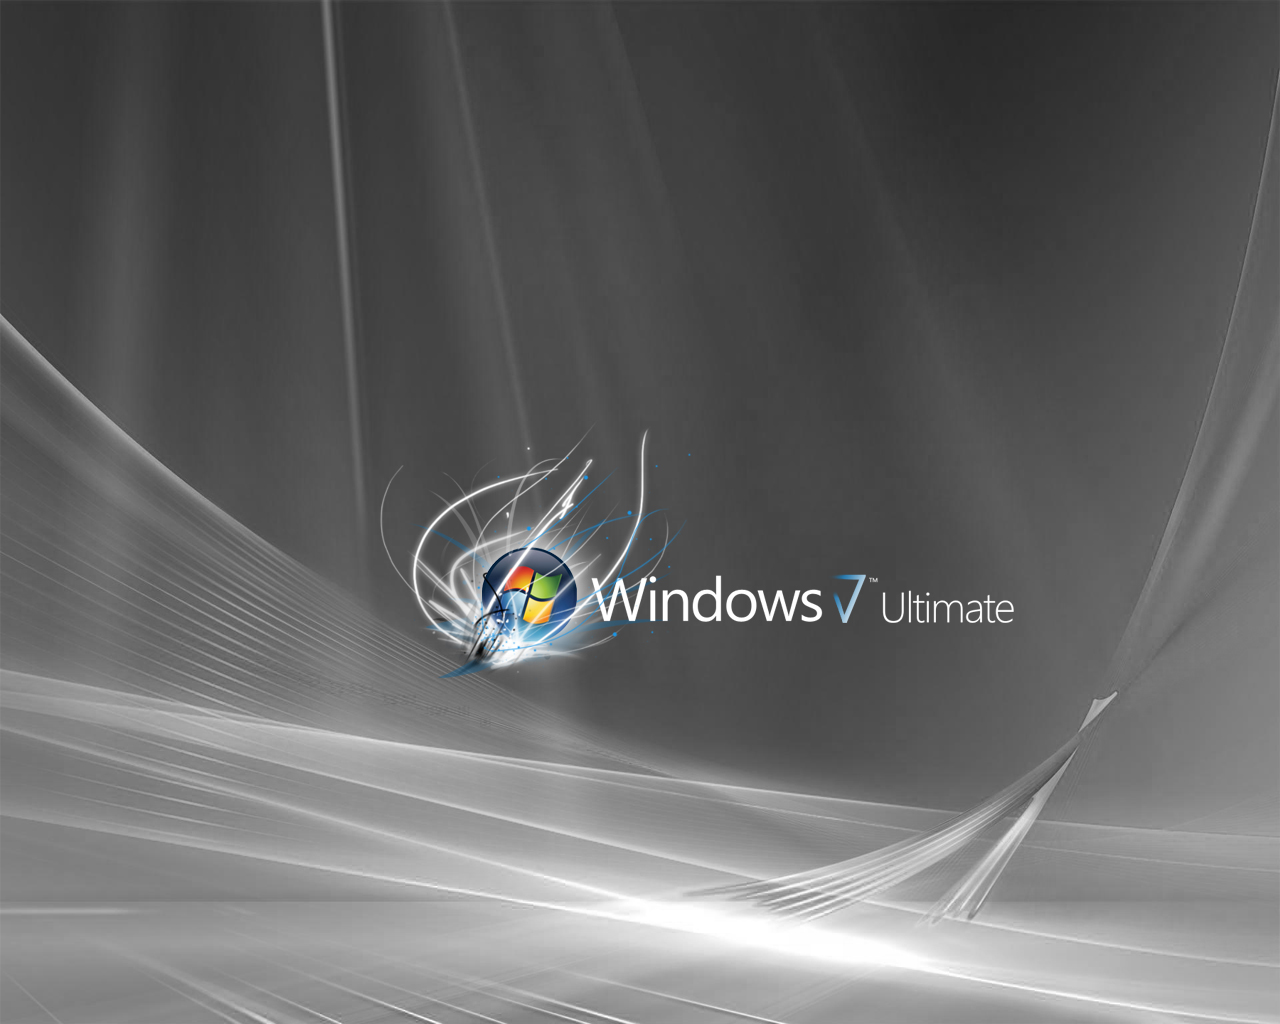 Windows 7 Ice Wallpaper